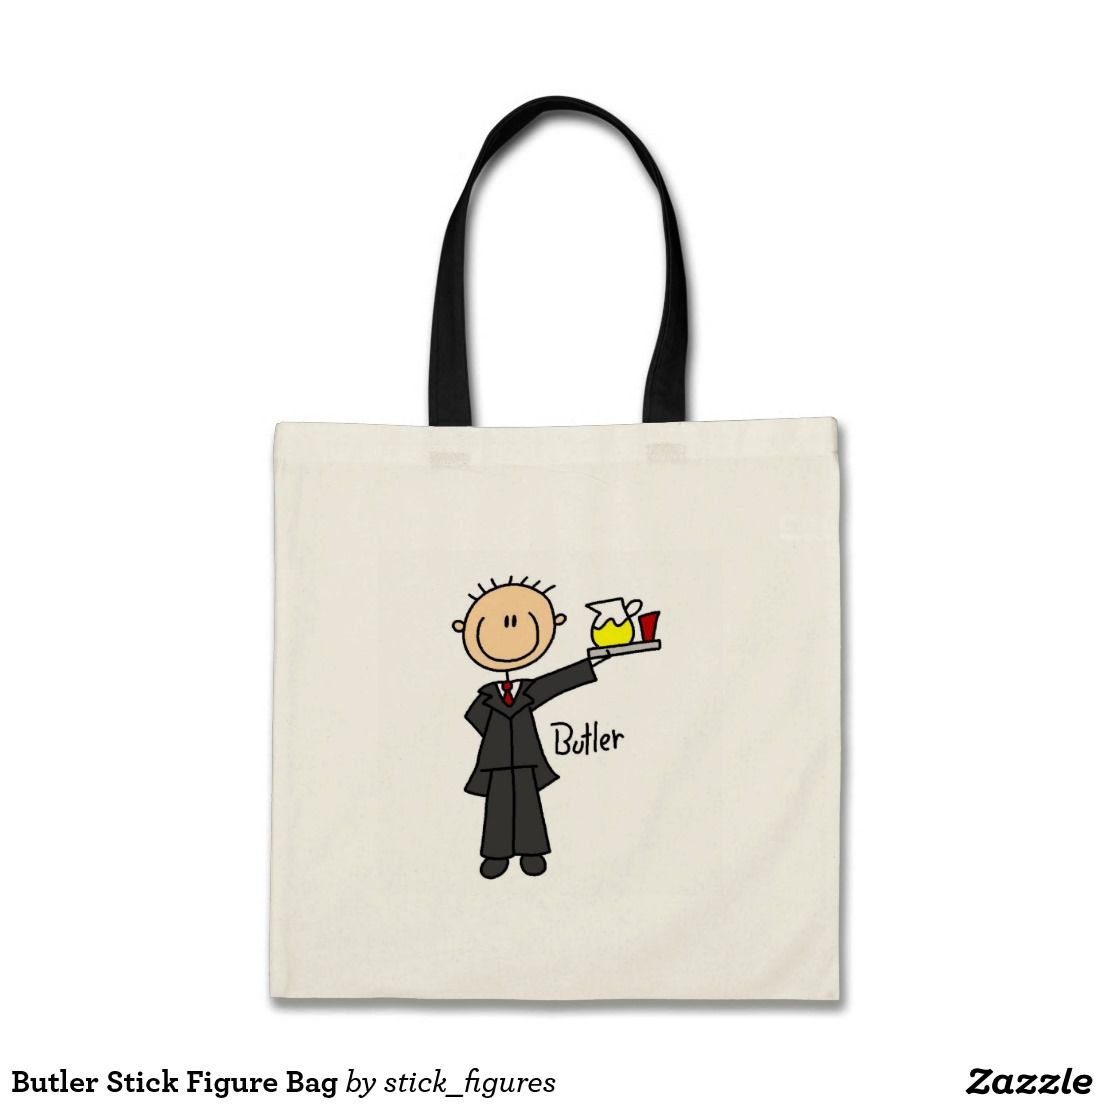 Butler Stick Figure Bag